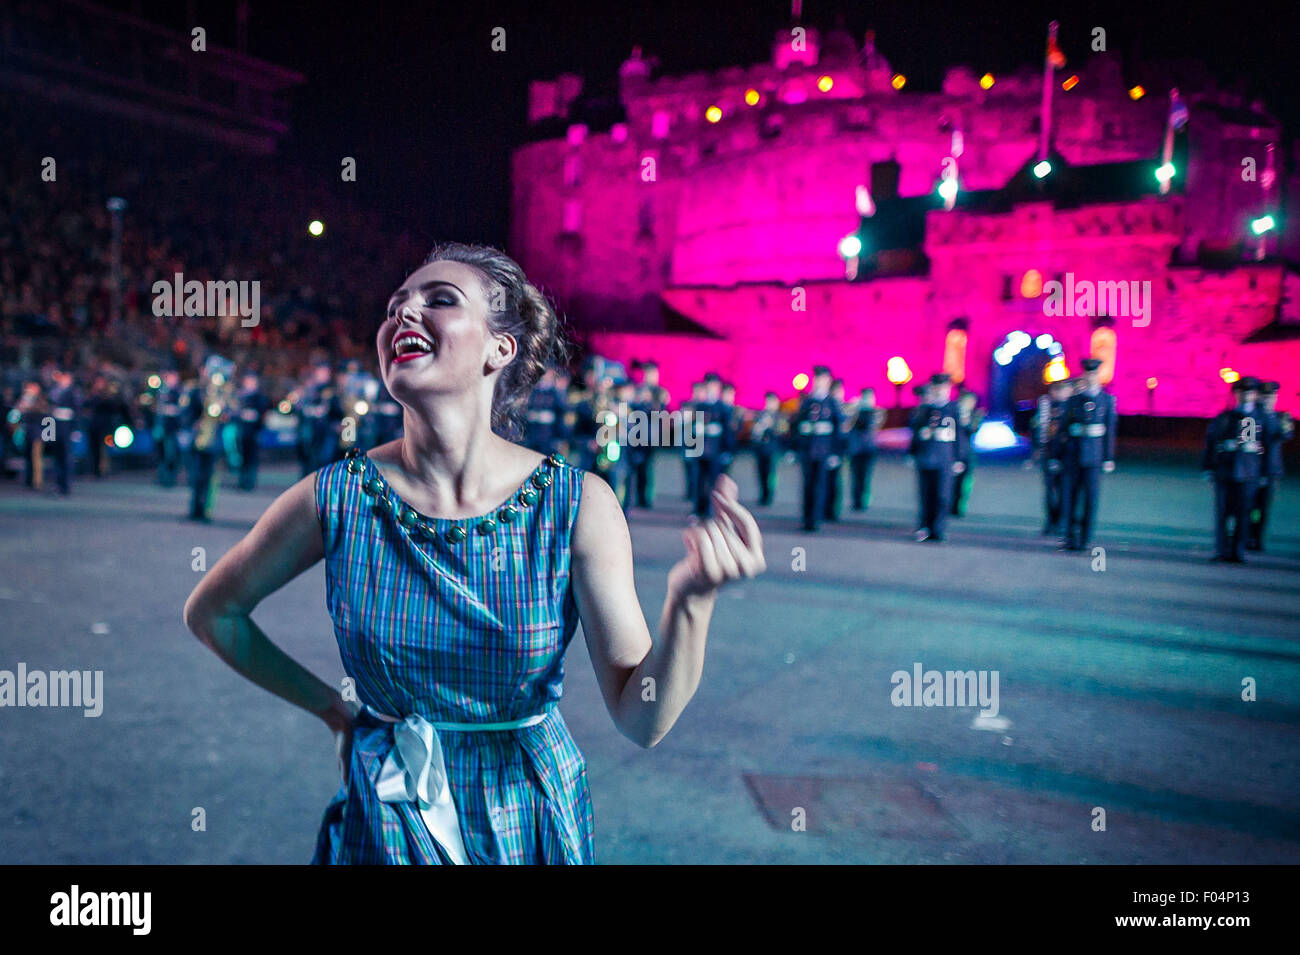 Edinburgh scotland uk 6th aug royal edinburgh for Royal edinburgh military tattoo